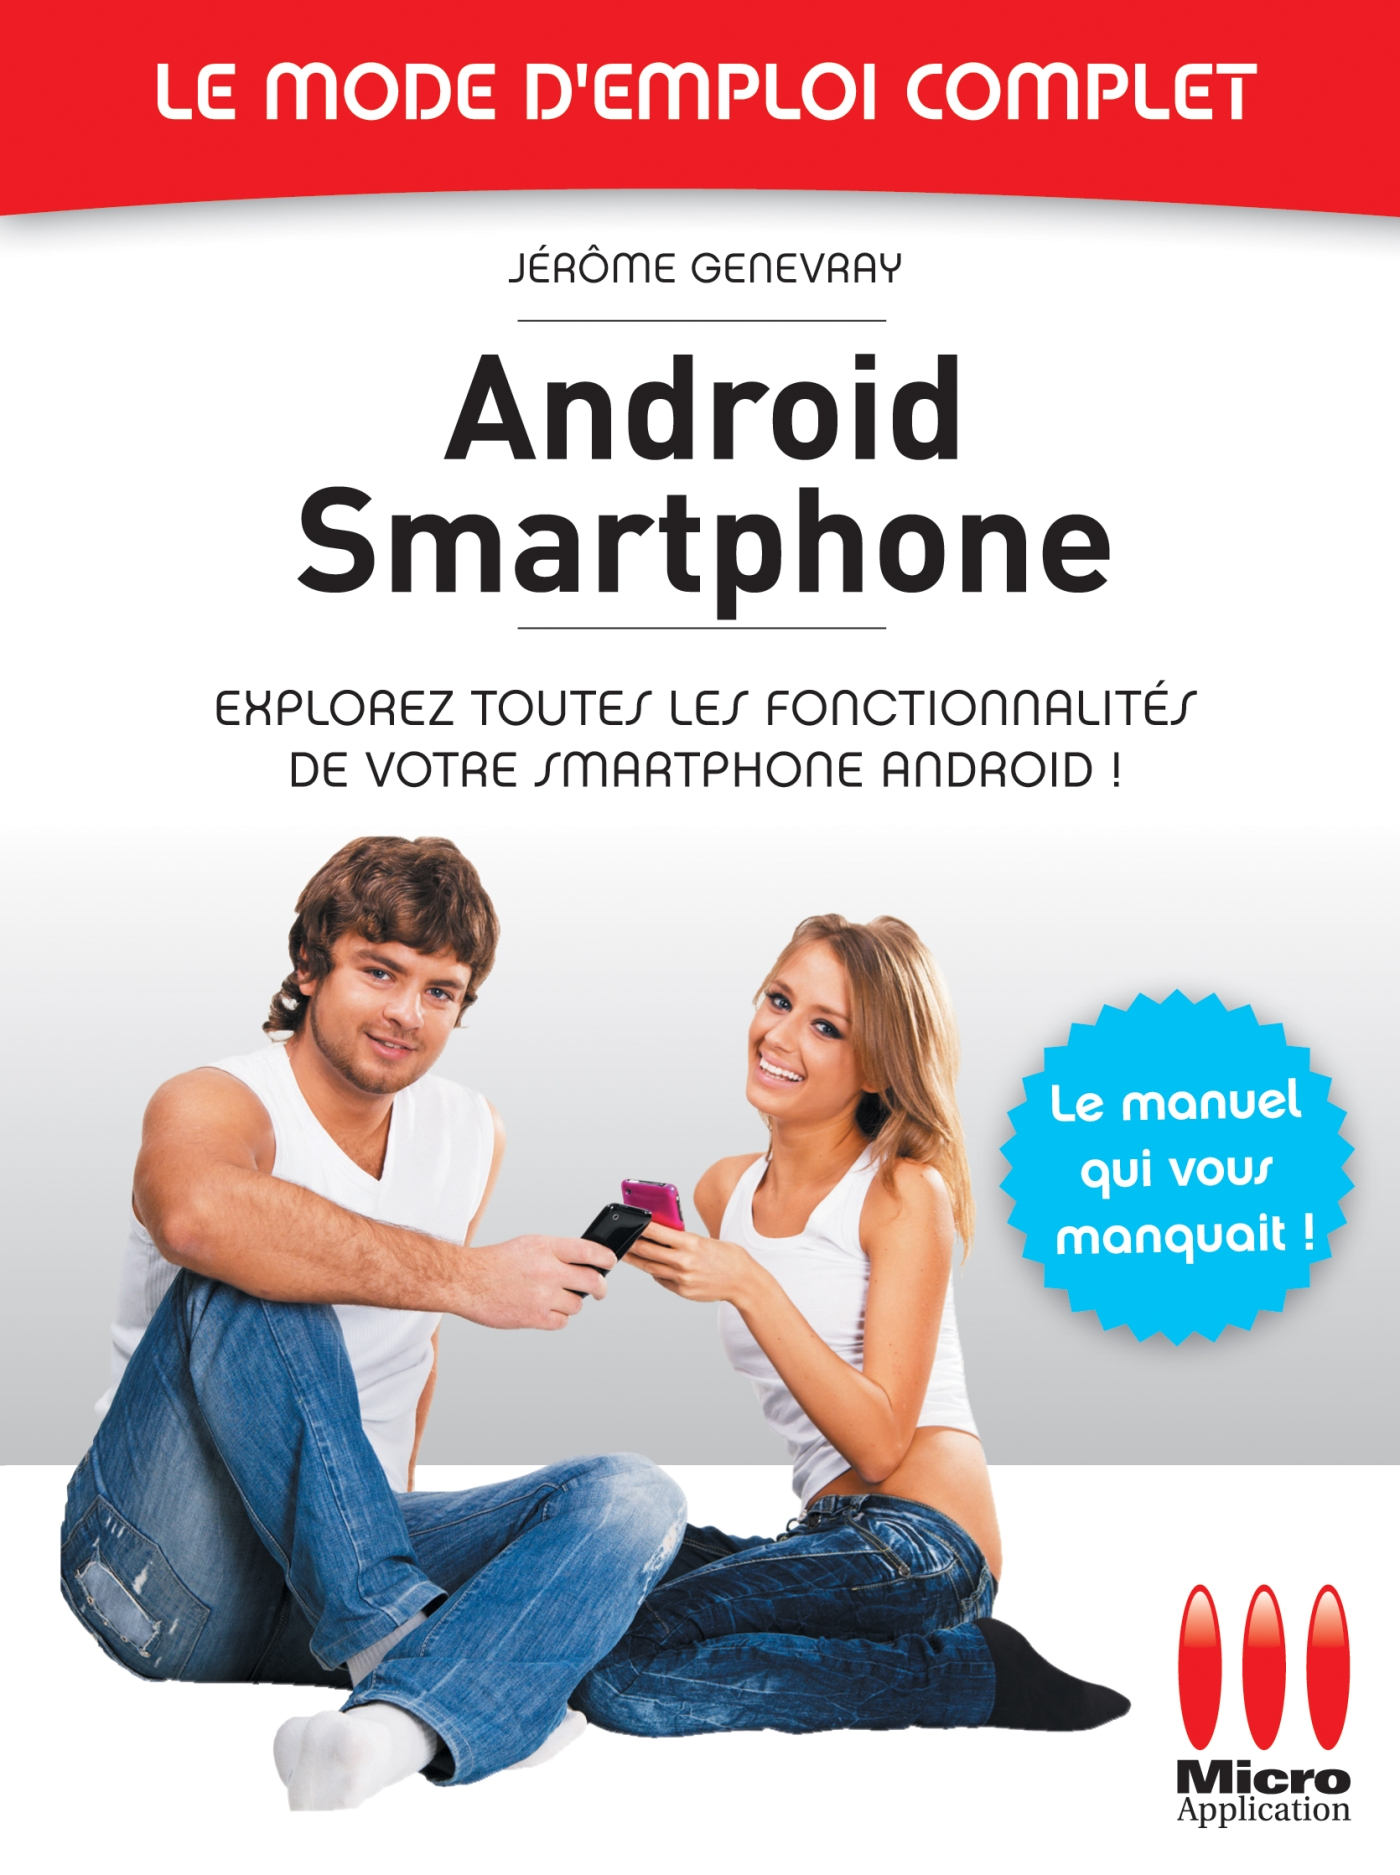 Androïd Smartphone - Le mode d'emploi complet